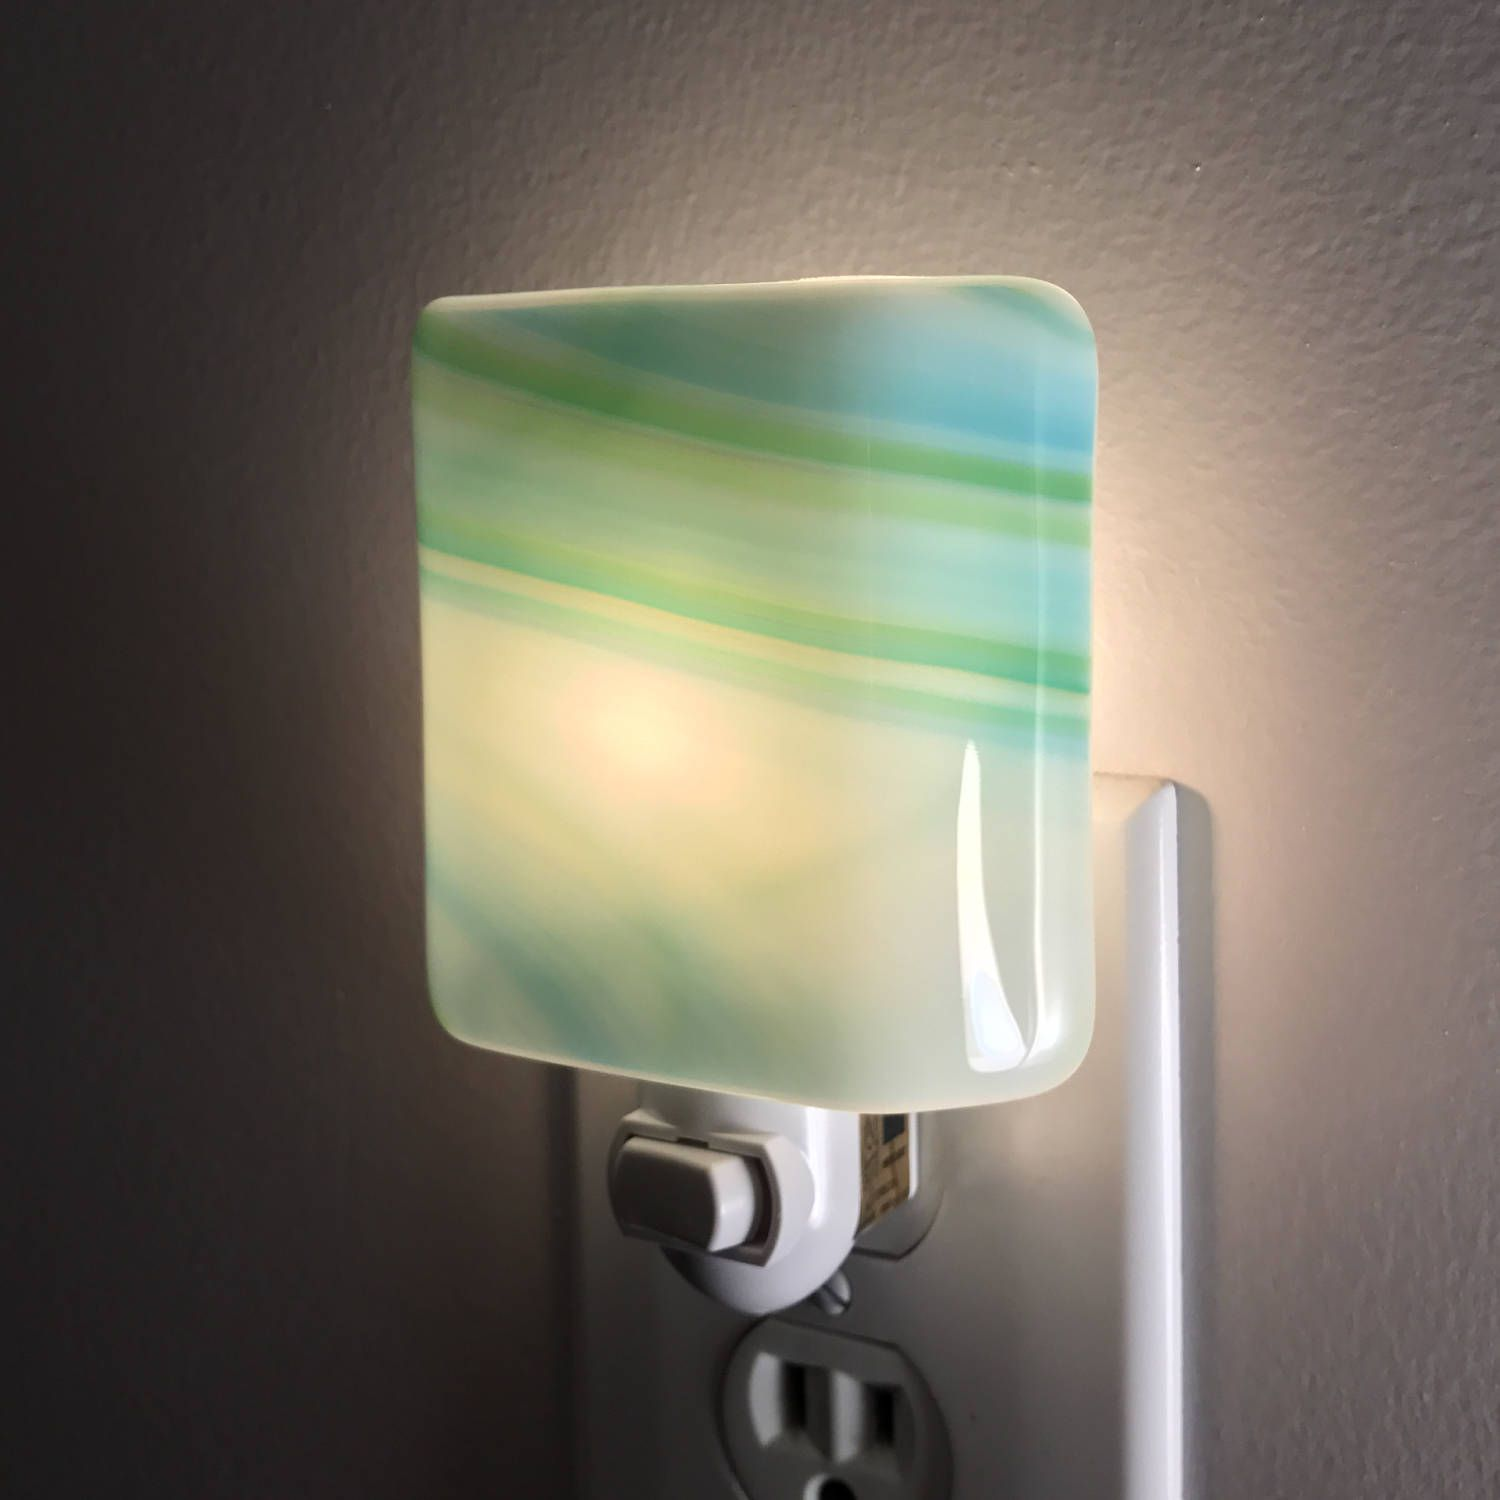 Bathroom Night Light glass night light - blue green and white streaky fused glass